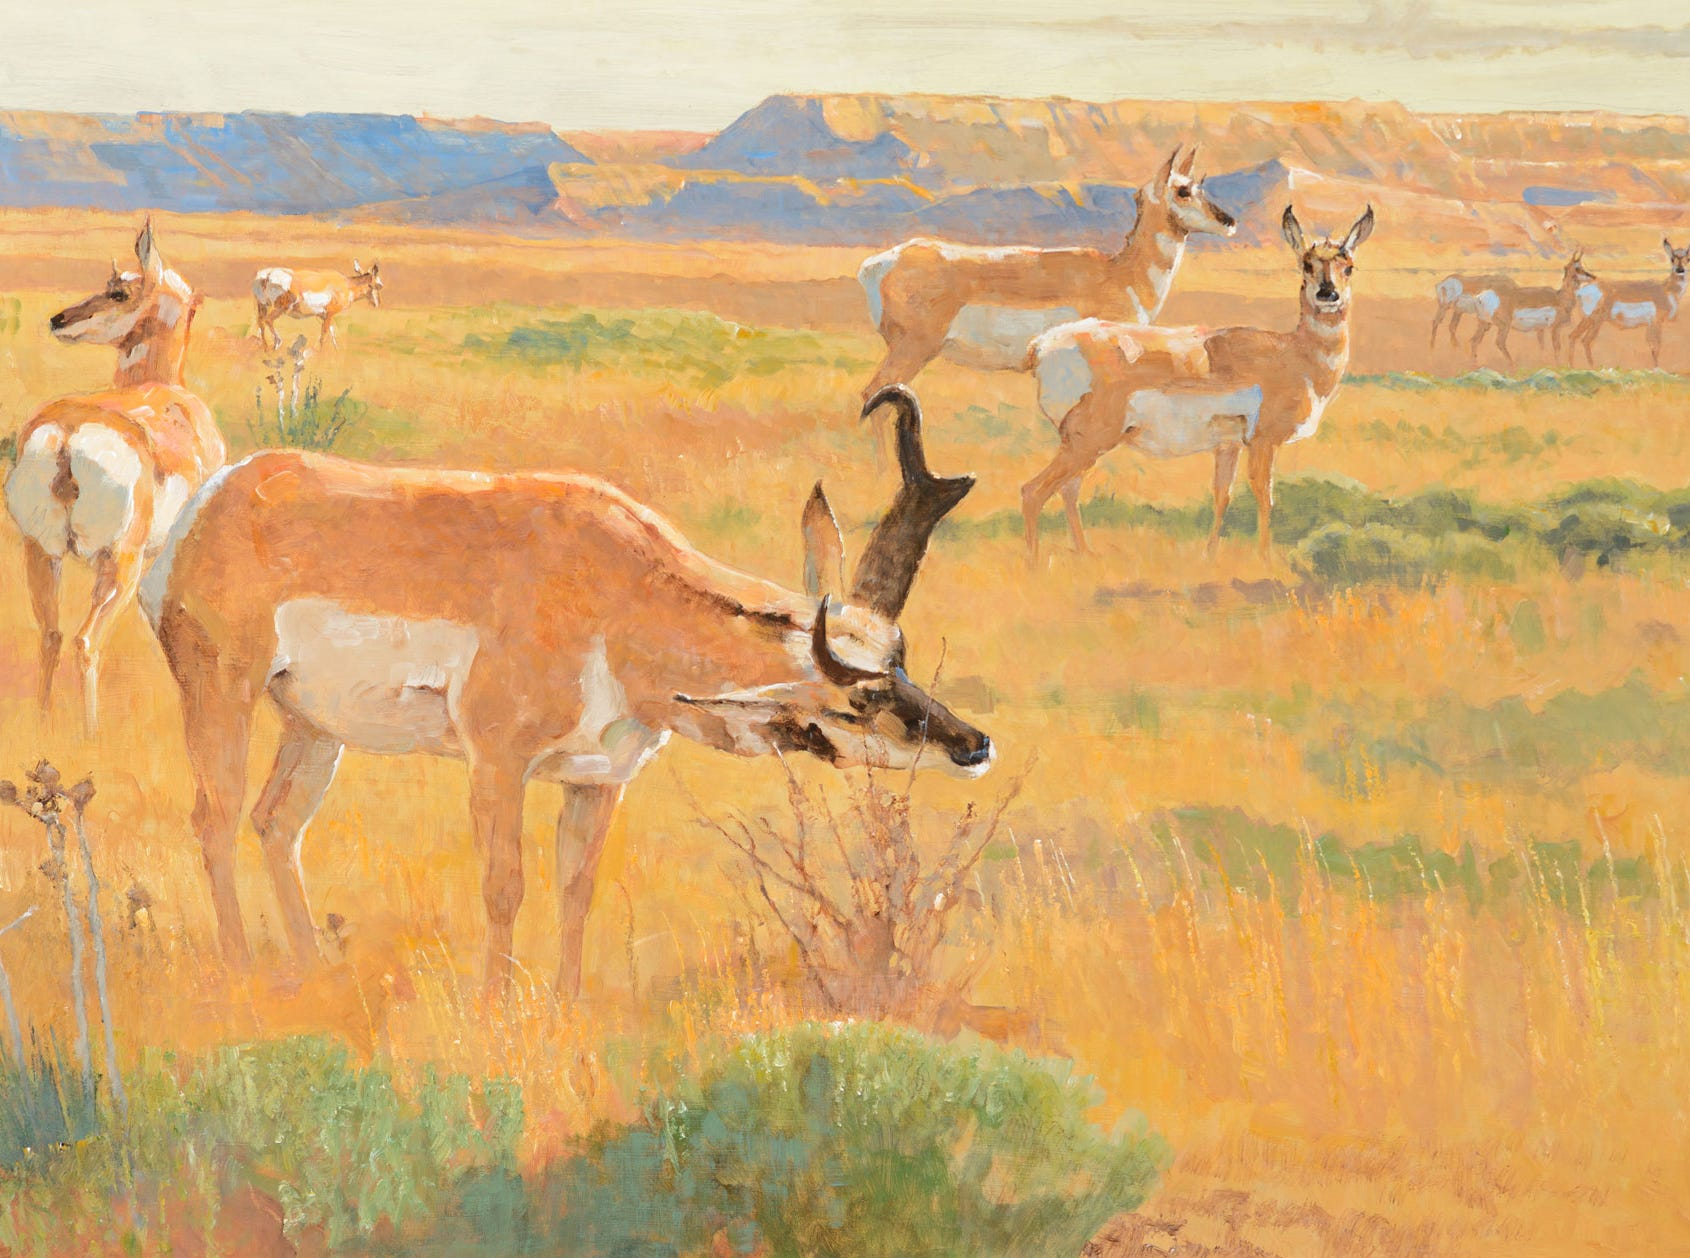 """Marking the Territory,"" 2005 by Bob Kuhn, valued at up to $250,000, to be auctioned July 28, 2018 as part of the Coeur d'Alene Art Auction in Reno."